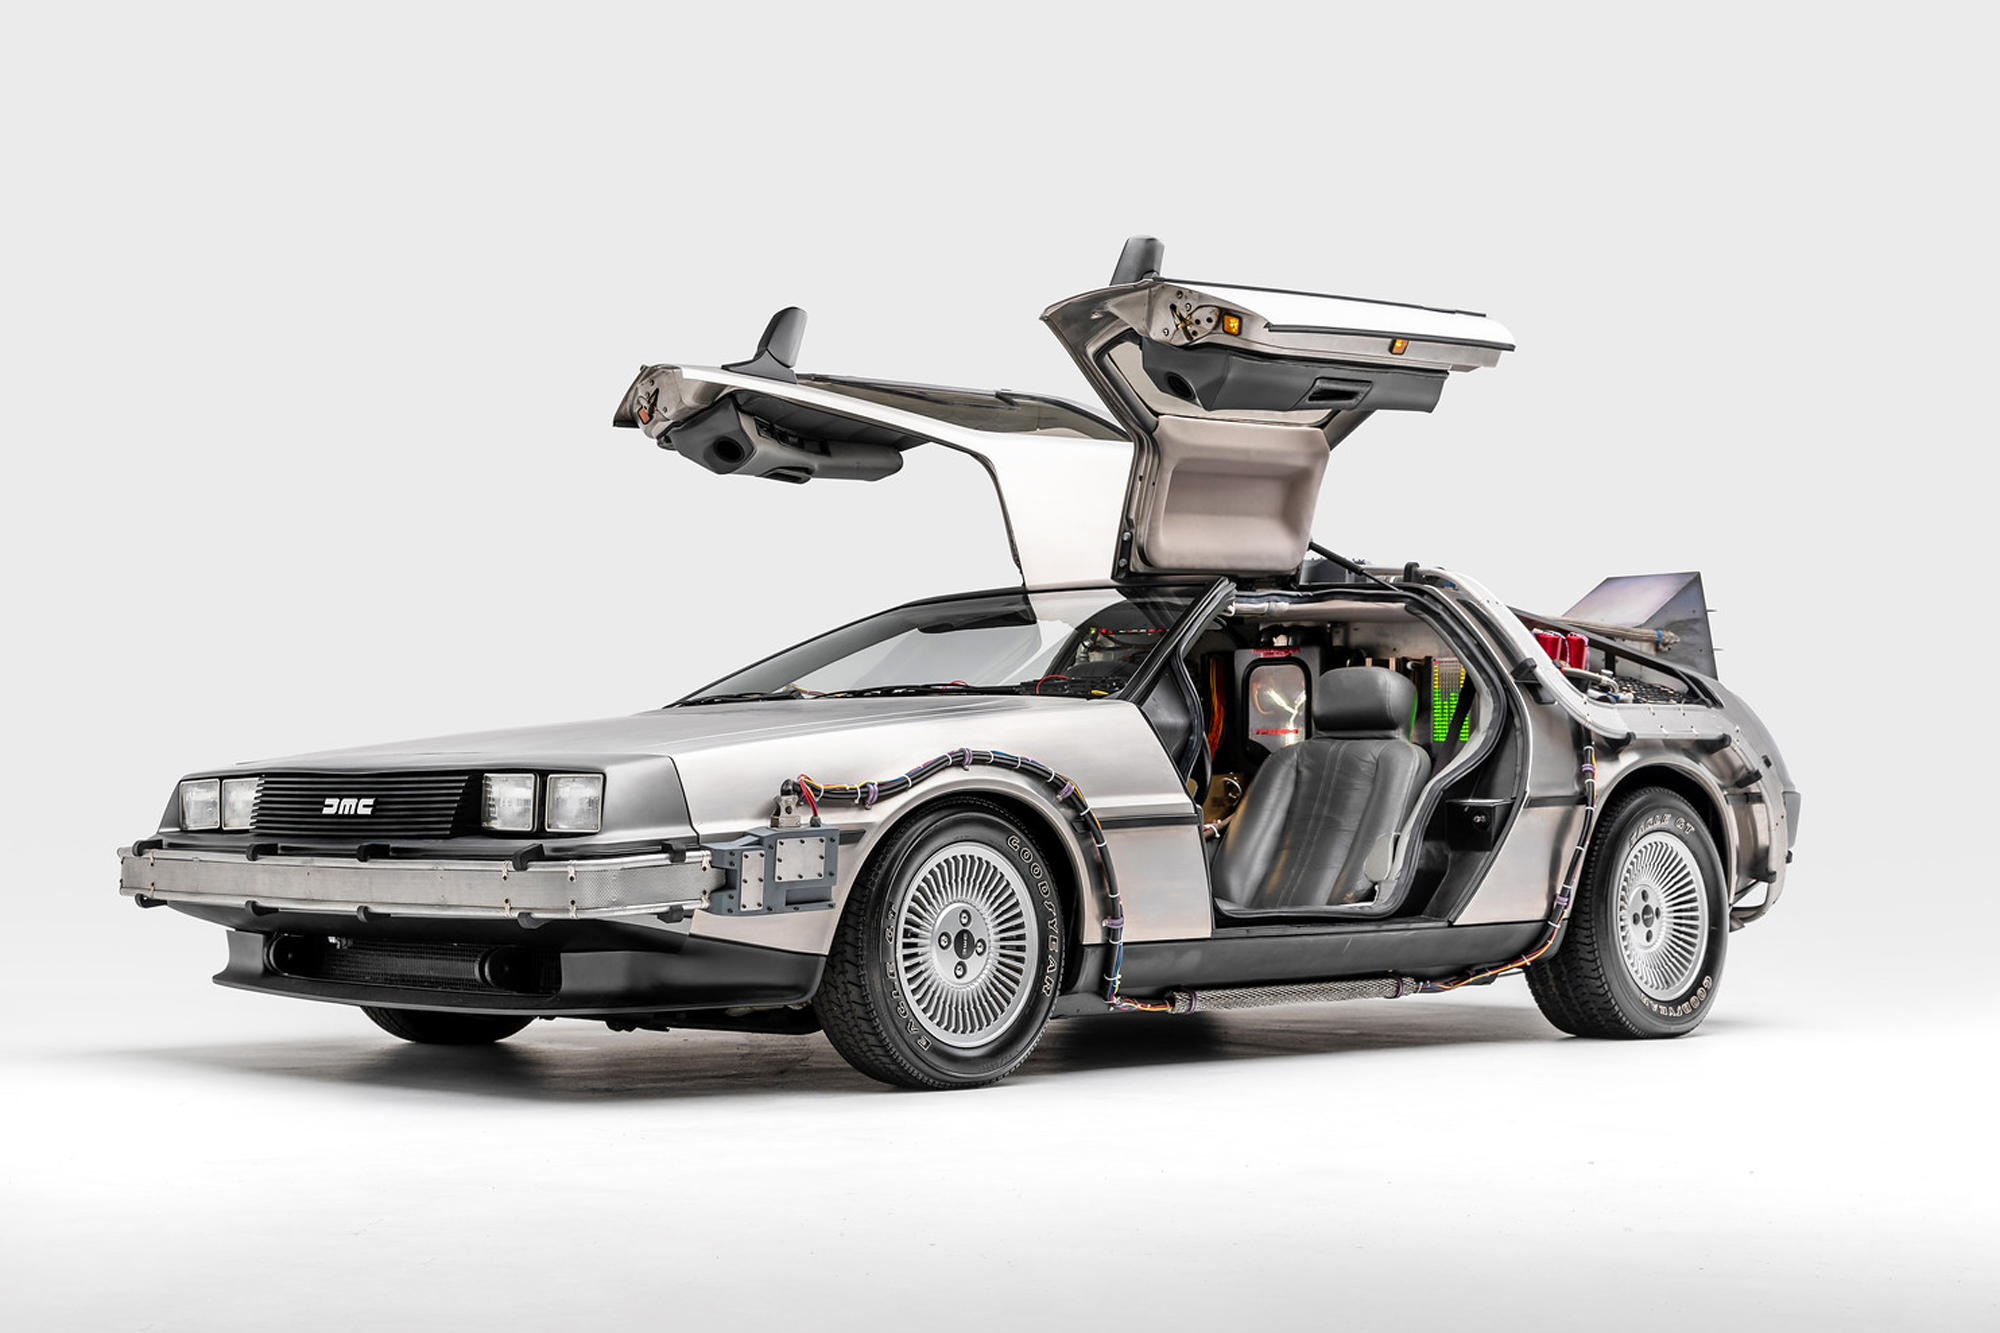 1981 De Lorean Time Machine — Back to the Future (1985), Back to the Future II (1989), and Back to the Future III (1990)